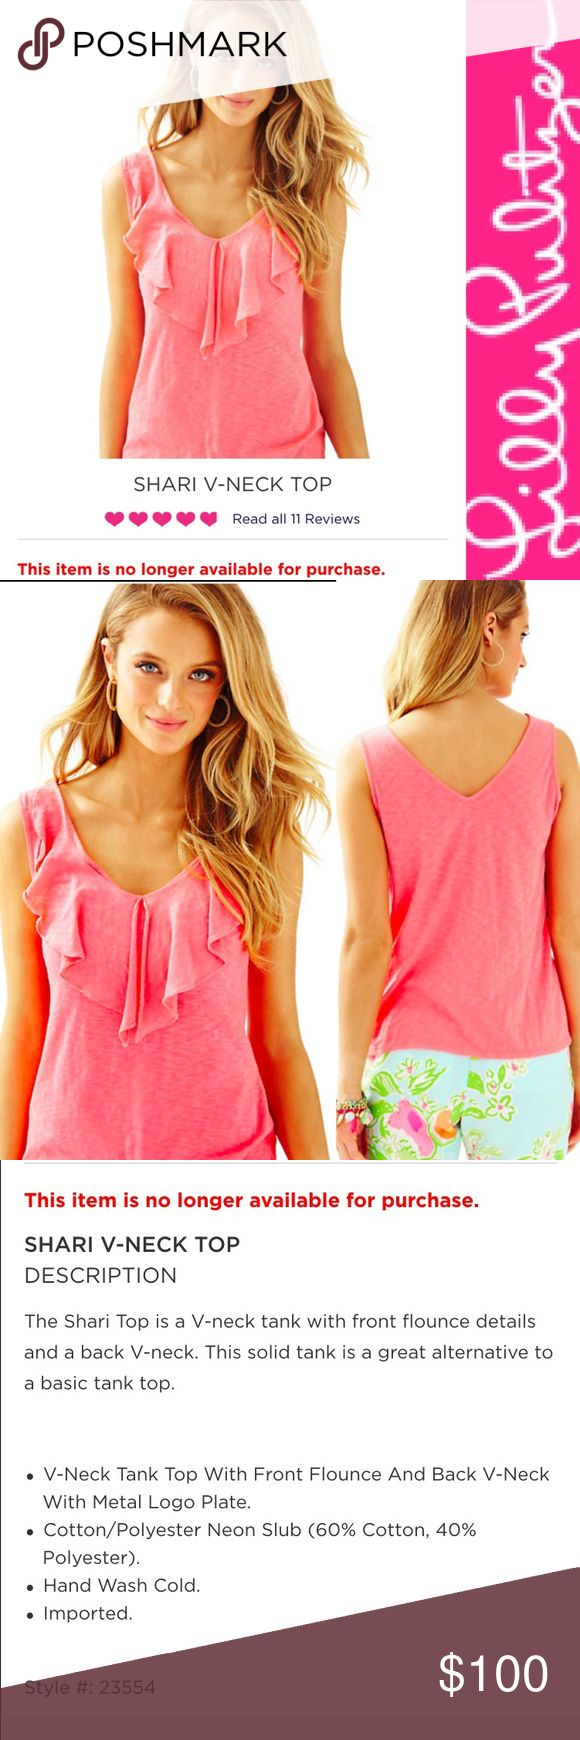 XL Lilly Pulitzer Shari Top - Hot Coral - NWT XL Lilly Pulitzer Shari Top - Hot Coral. OUT OF STOCK item! Gorgeous top!!! BNWT in original packaging. Model image and item description courtesy of Lilly website, actual item shown. NO TRADES, PRICE FIRM, NO discussion of price in comments (sold out item - no offers, price is firm). Thanks for shopping my closet! 💞 Note: Not eligible for bundle discount Lilly Pulitzer Tops